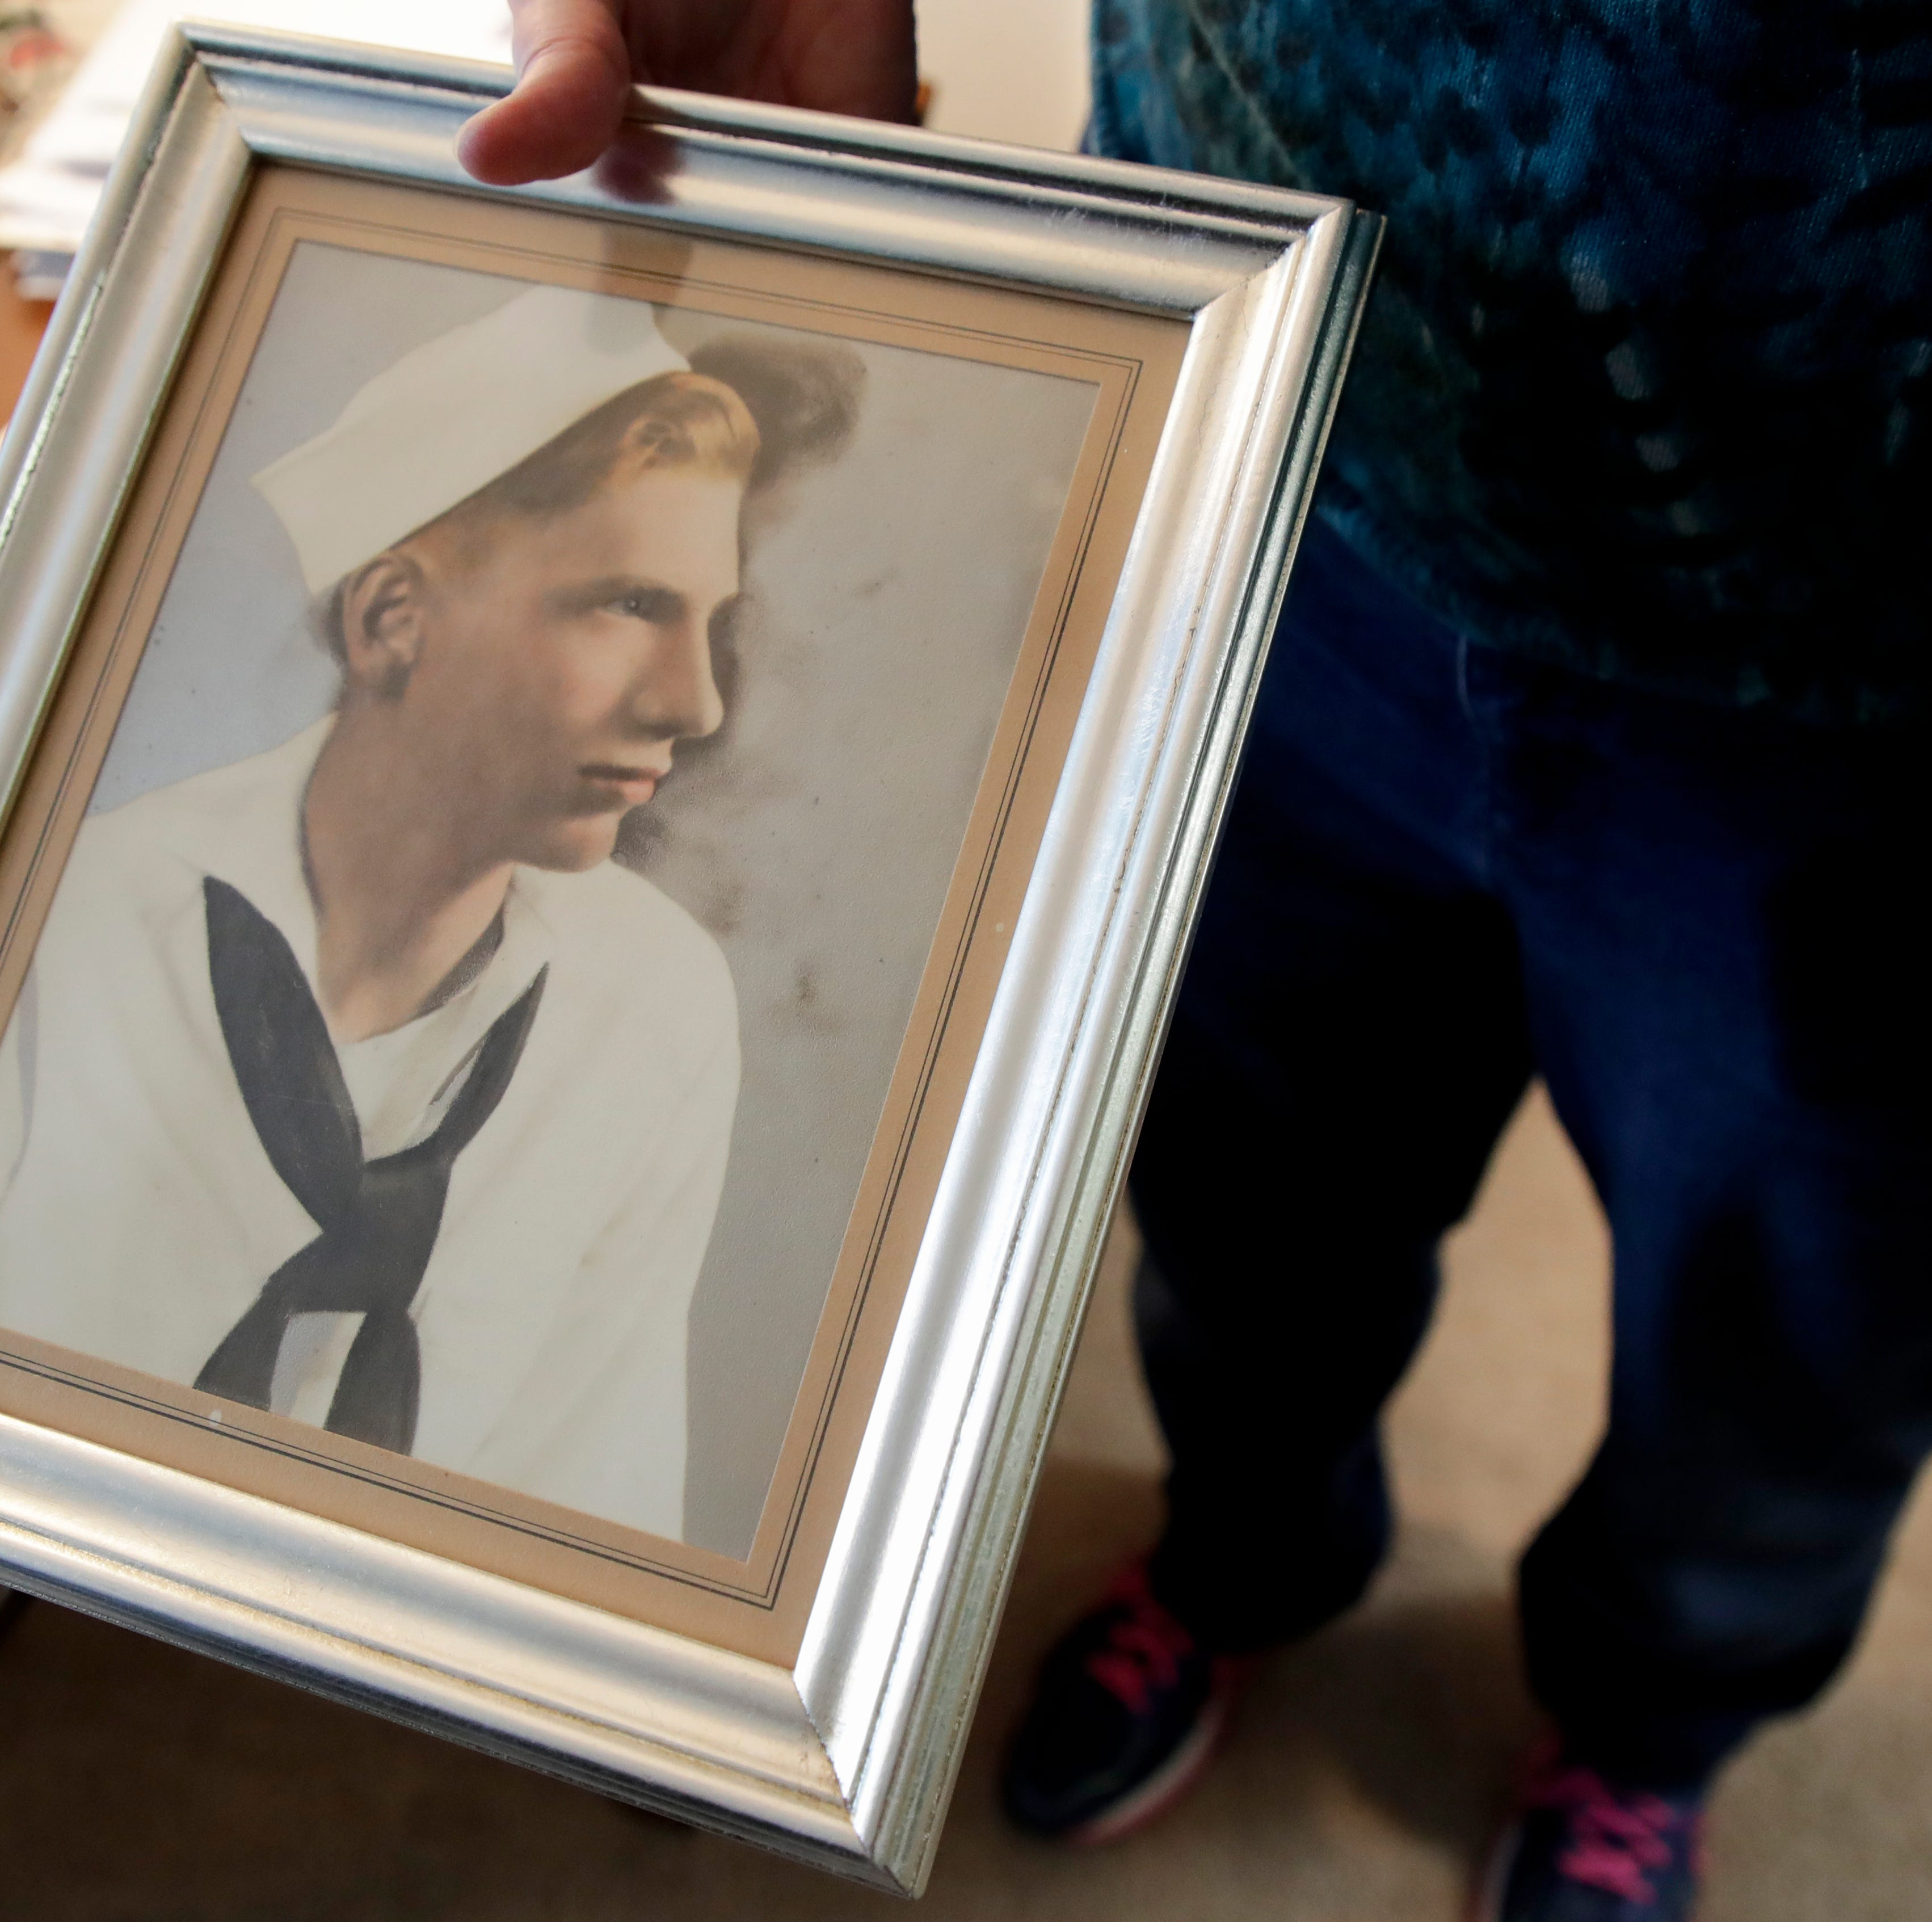 Sailor killed in Pearl Harbor deserves hero's homecoming as he is laid to rest in Tallahassee